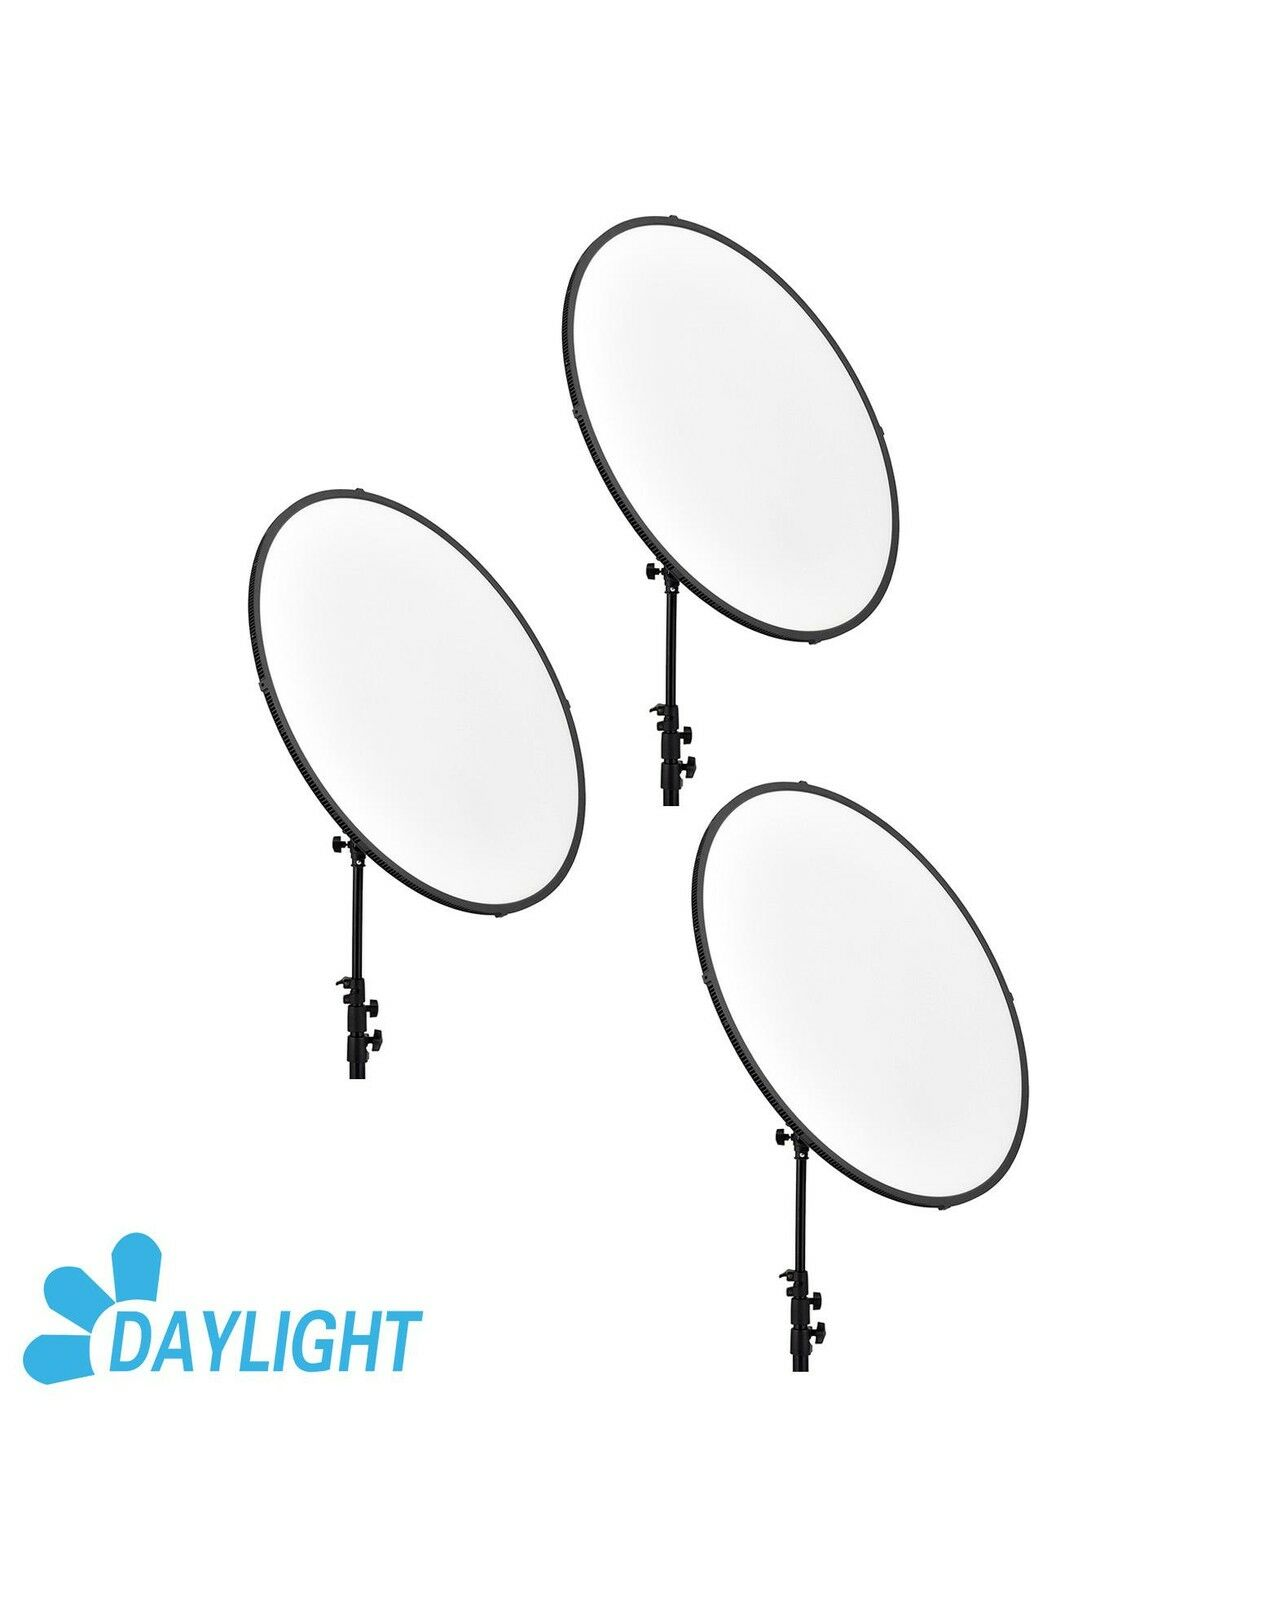 CAME-TV C1500D Daylight LED Edge Light (3 Pieces Set) Led Video Light